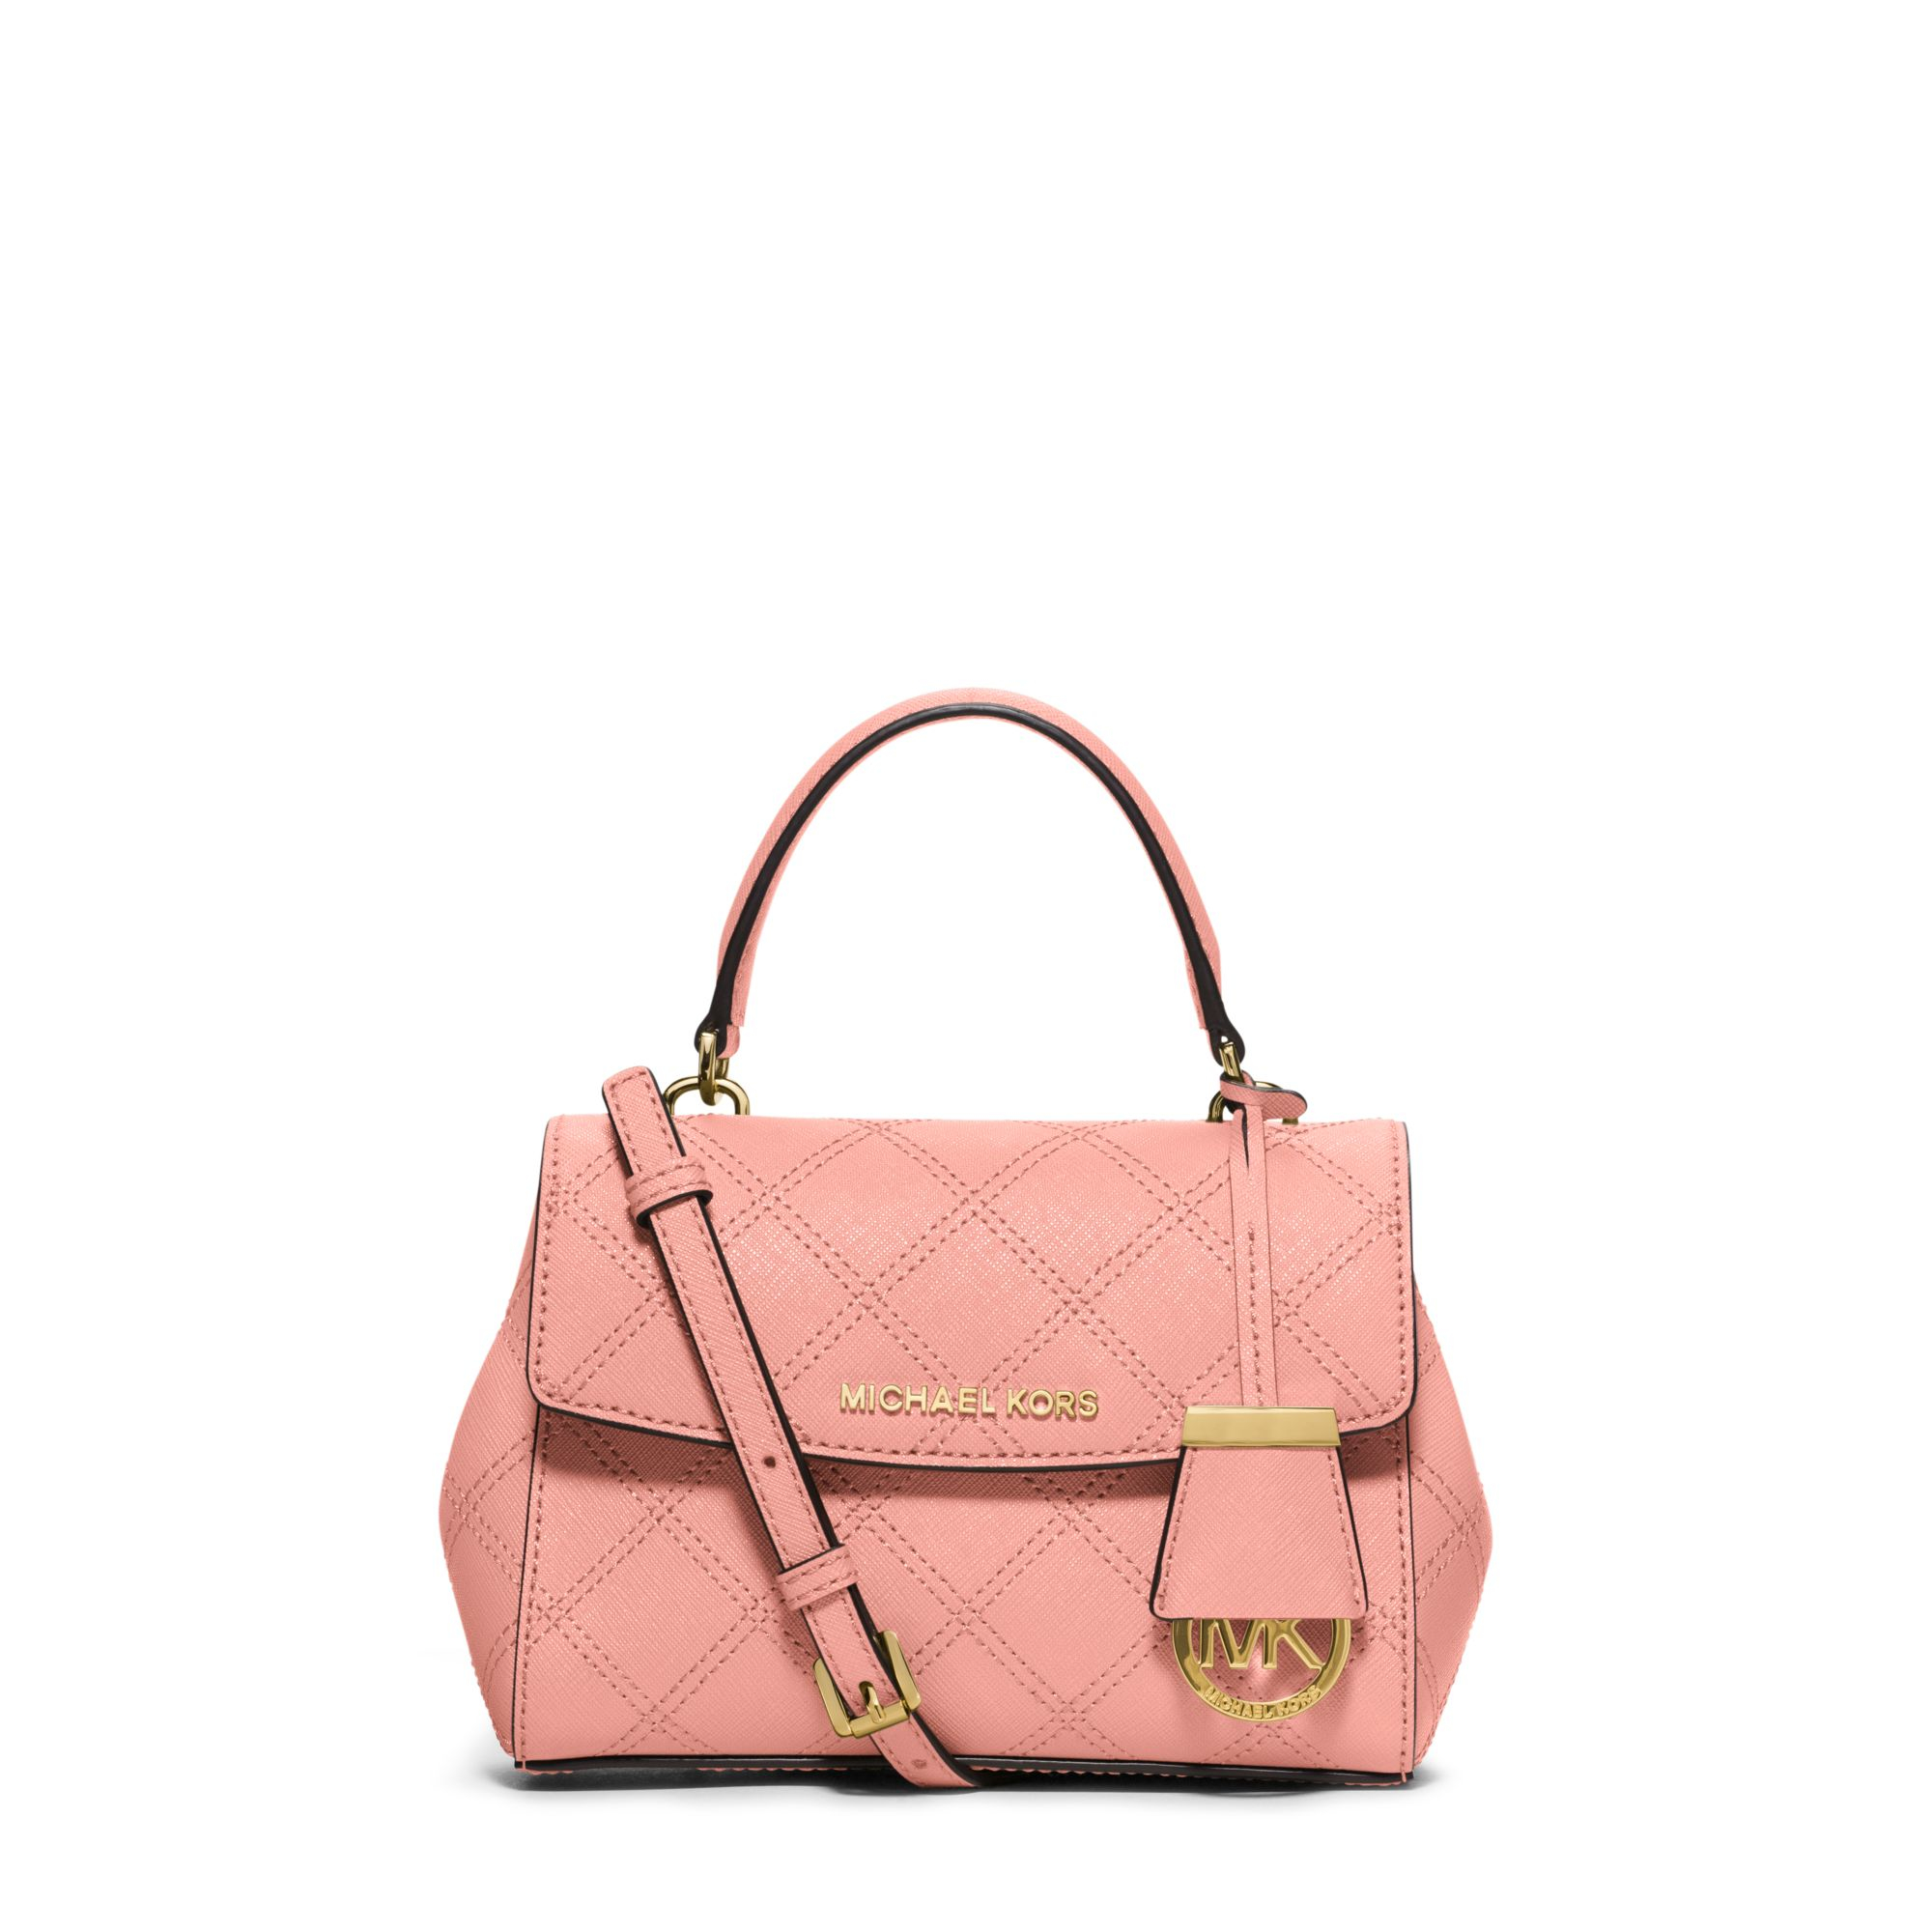 c68638576c9c Lyst - Michael Kors Ava Extra-small Saffiano Leather Crossbody in Pink